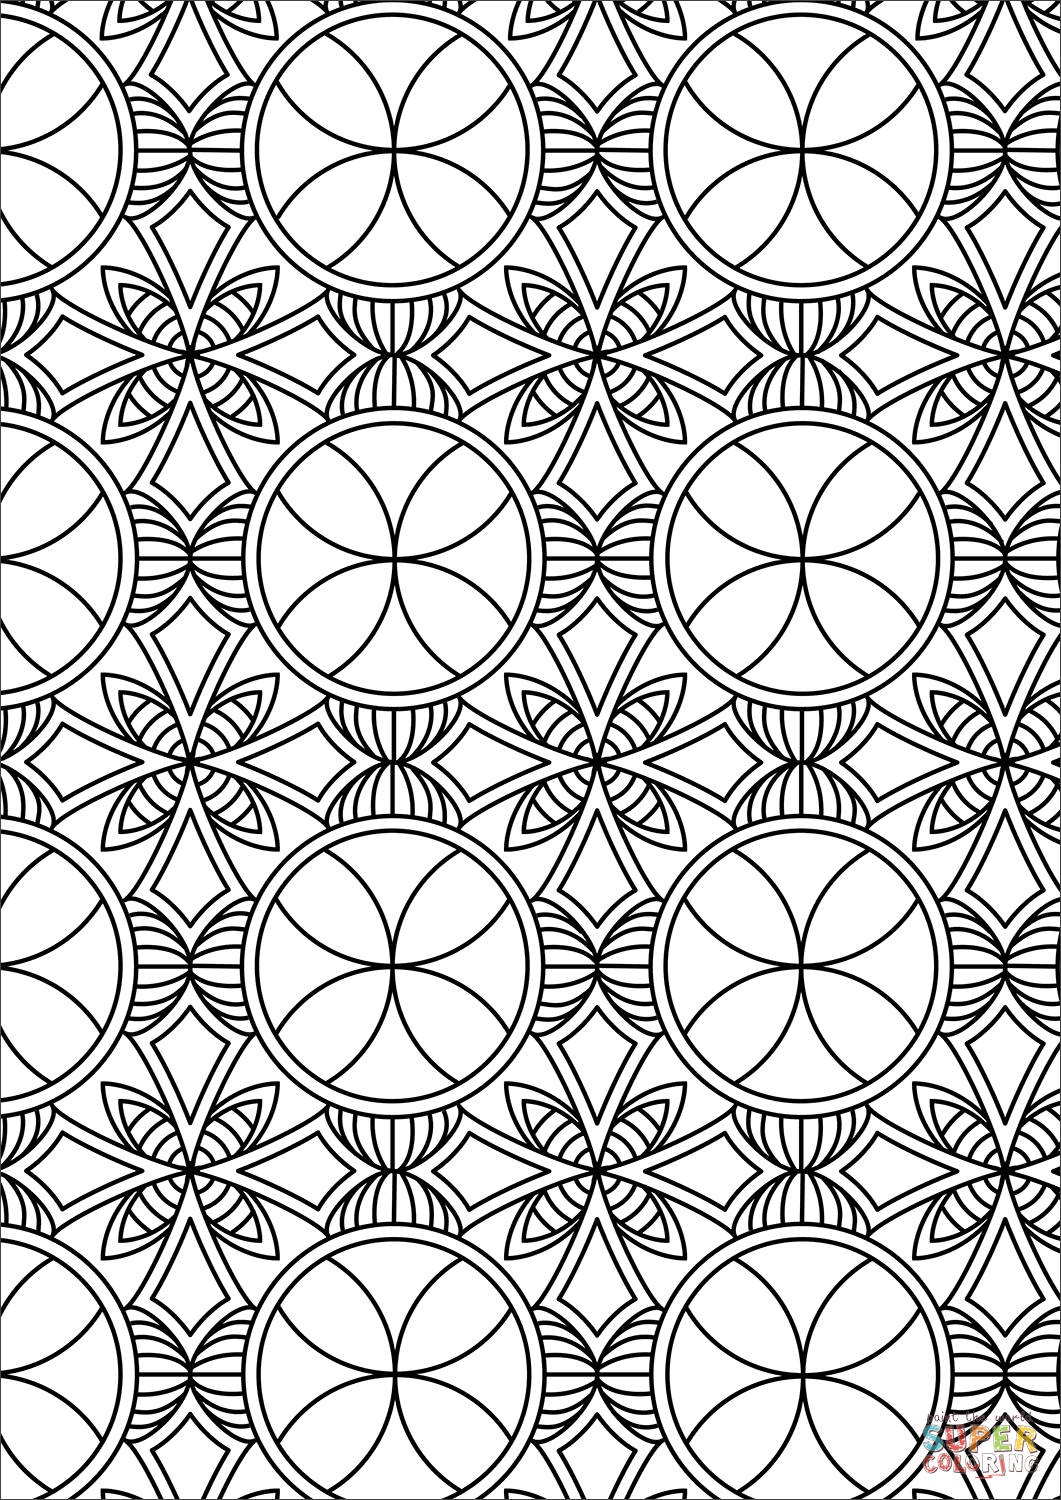 coloring sheets patterns abstract pattern coloring page free printable coloring pages sheets coloring patterns